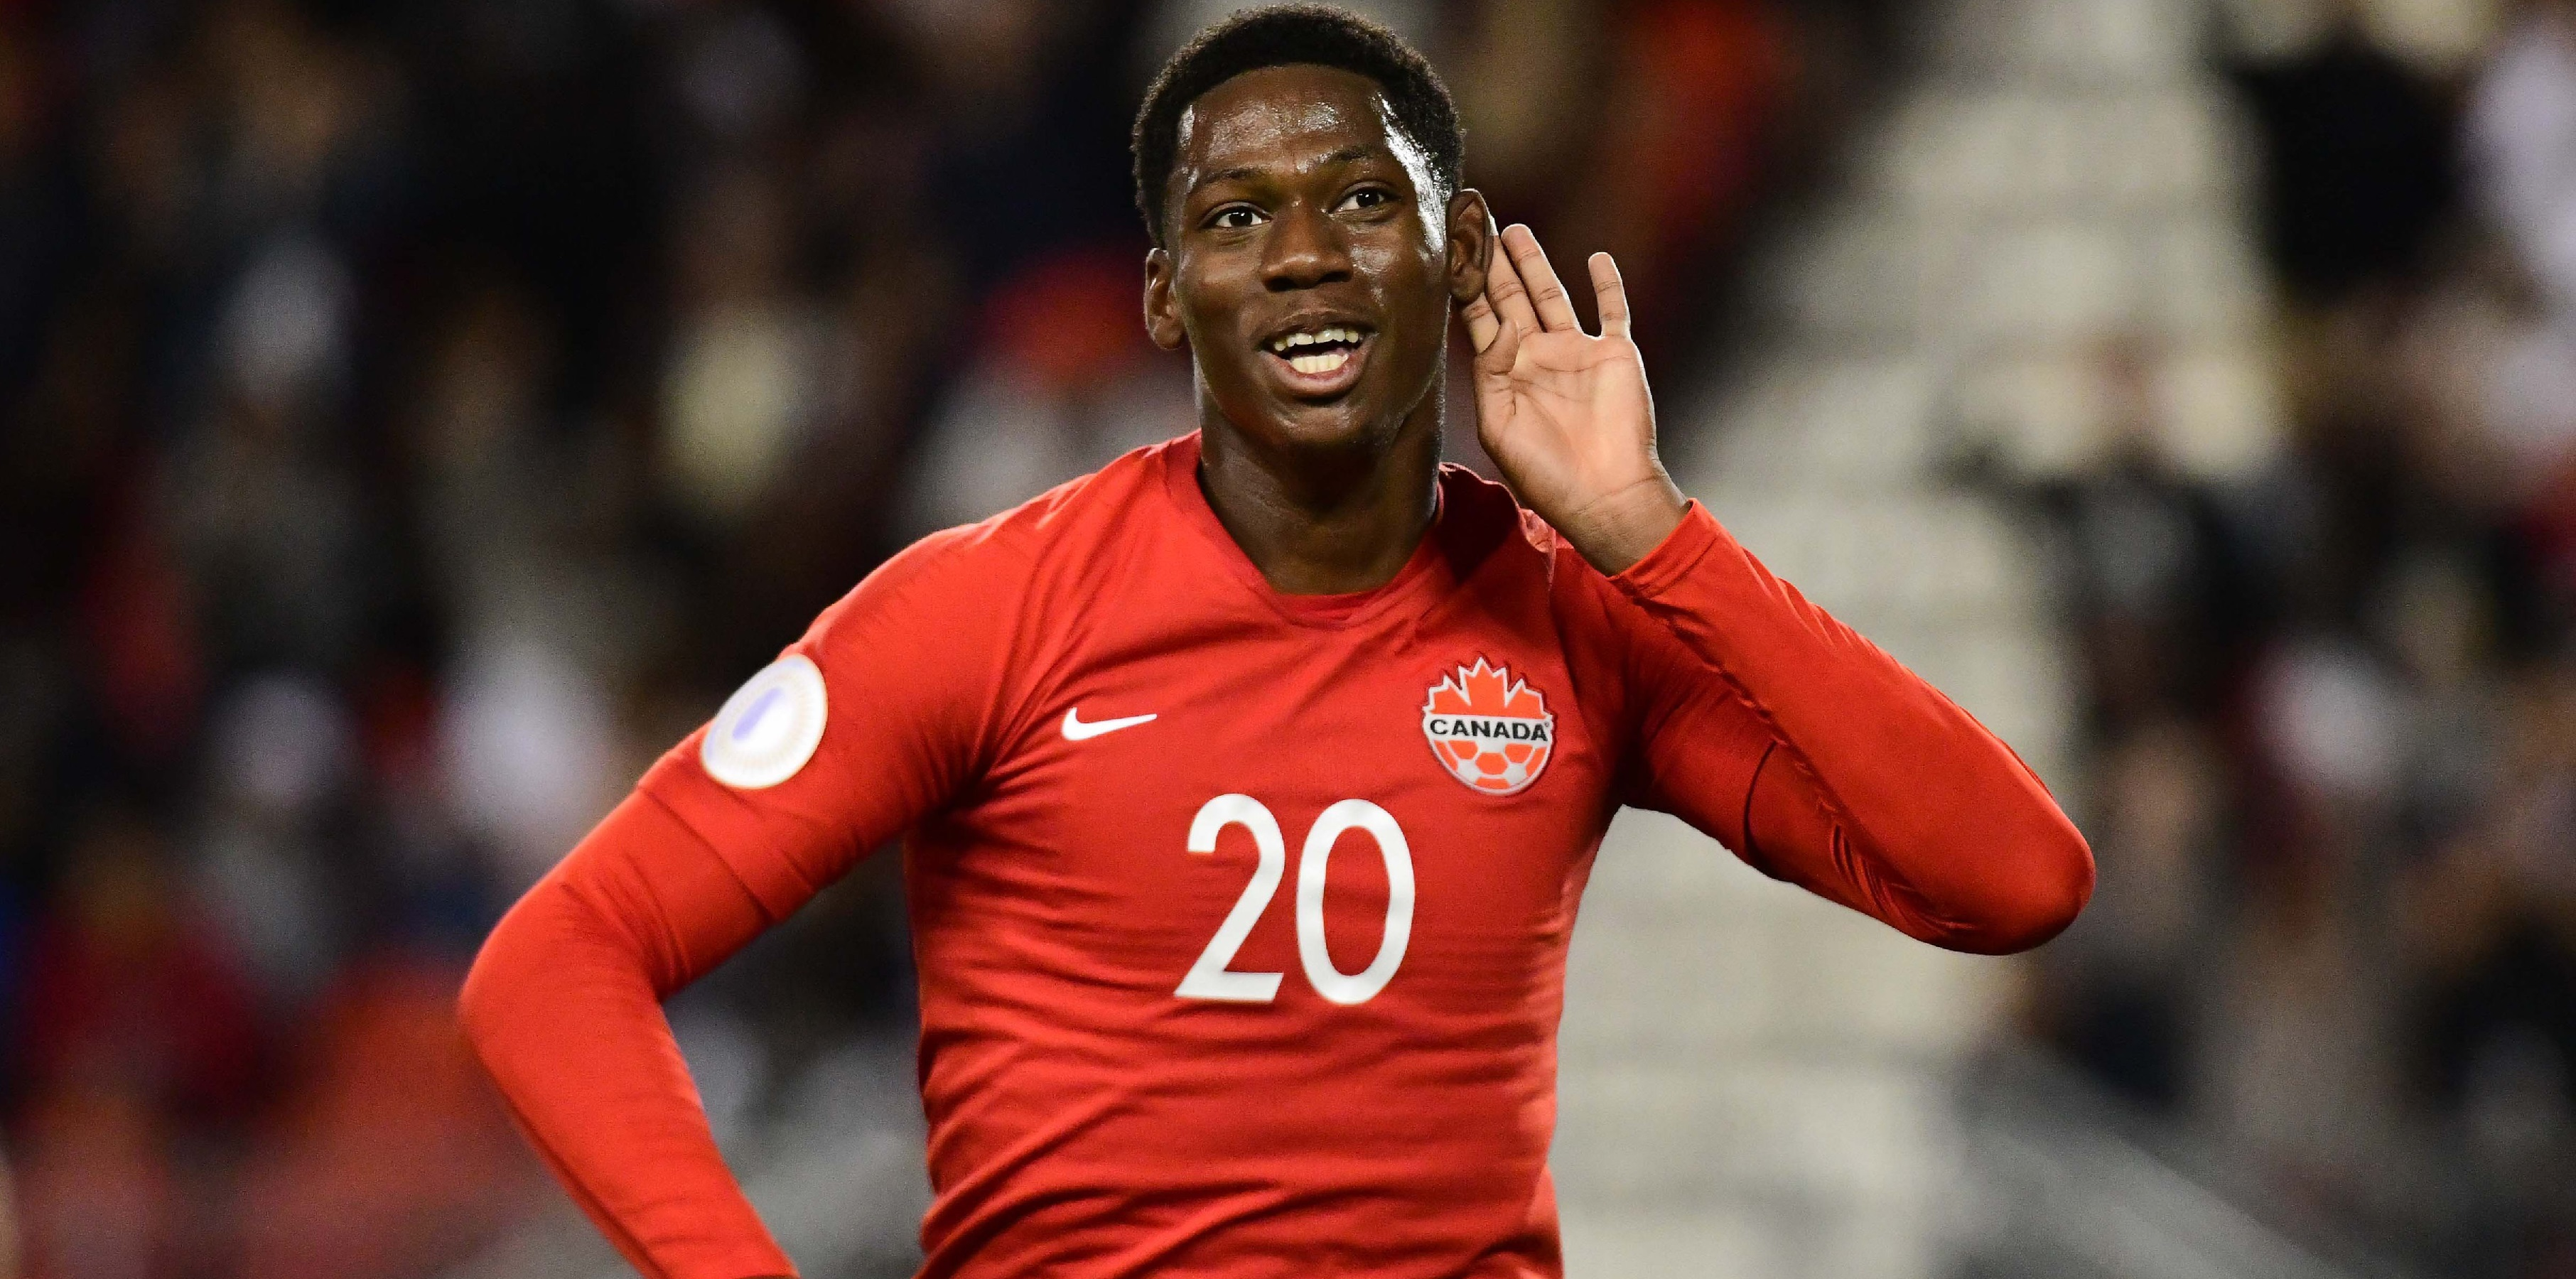 Liverpool linked with surprise move for hot-shot Canadian forward